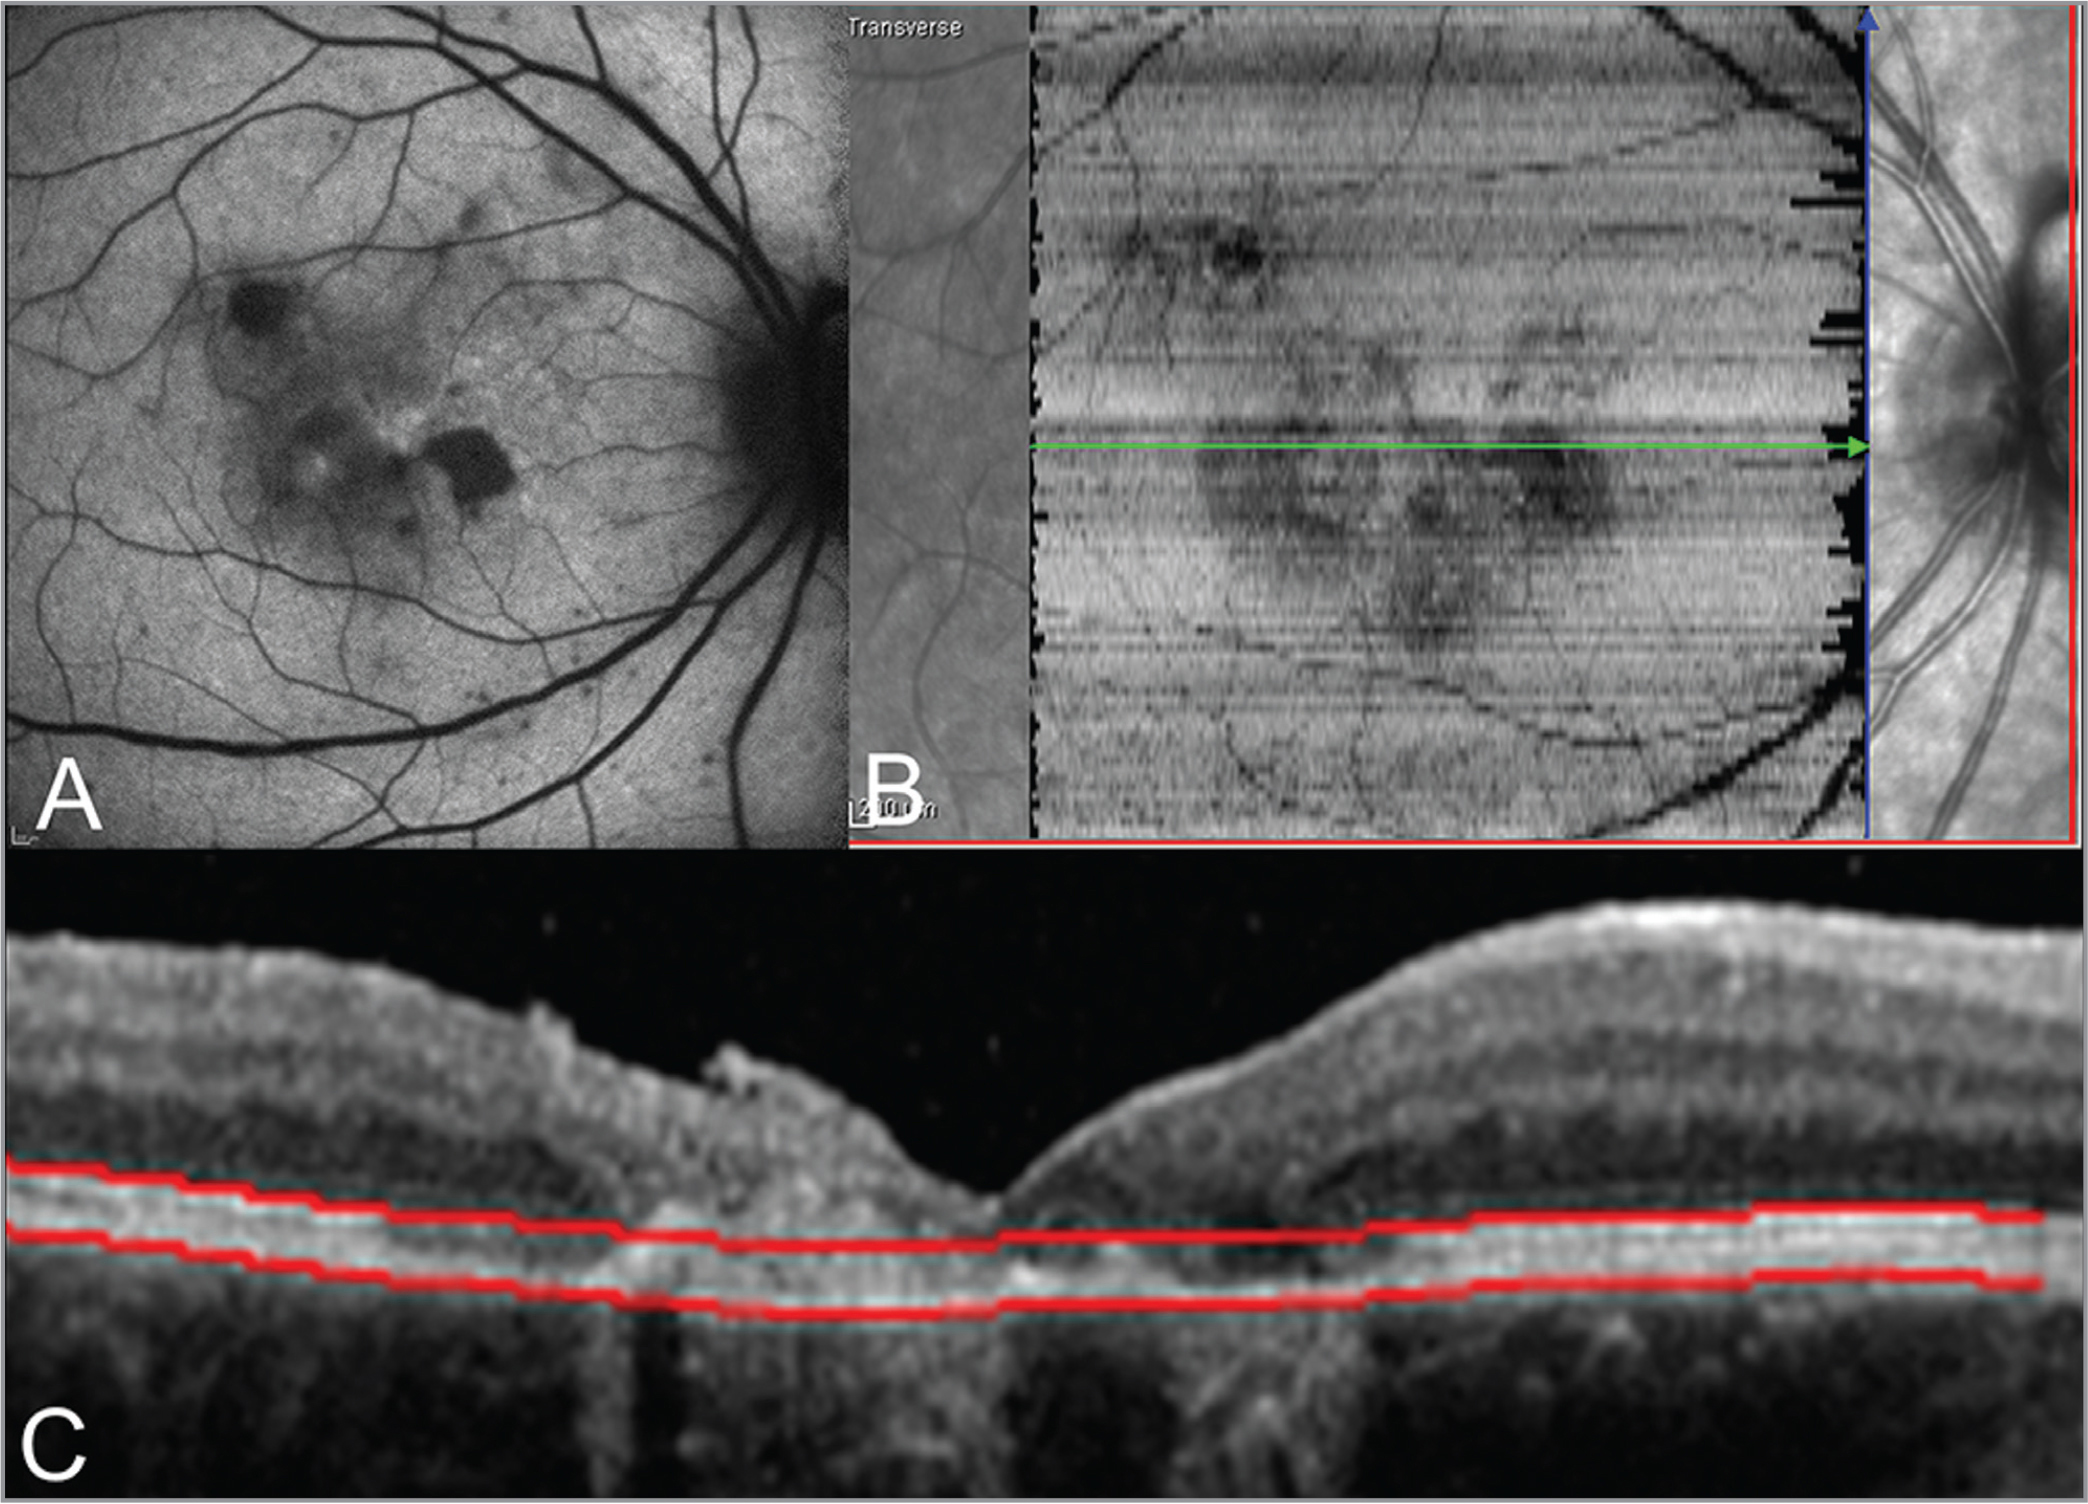 Multimodal imaging of a 13-year-old girl with outer retinal toxoplasmosis in her right eye (same patient as shown in Figure 3). (A) Fundus autofluorescence shows multiple areas of hypoautofluorescence corresponding to retinal pigment epithelium (RPE) loss. (B) En face spectral-domain optical coherence tomography (SD-OCT) segmented to the level of photoreceptor inner and outer segments and RPE and corresponding structural SD-OCT B-scan (C) demonstrate atrophy of the outer retina. Red segmentation lines show the level of the slab presented in panel B.